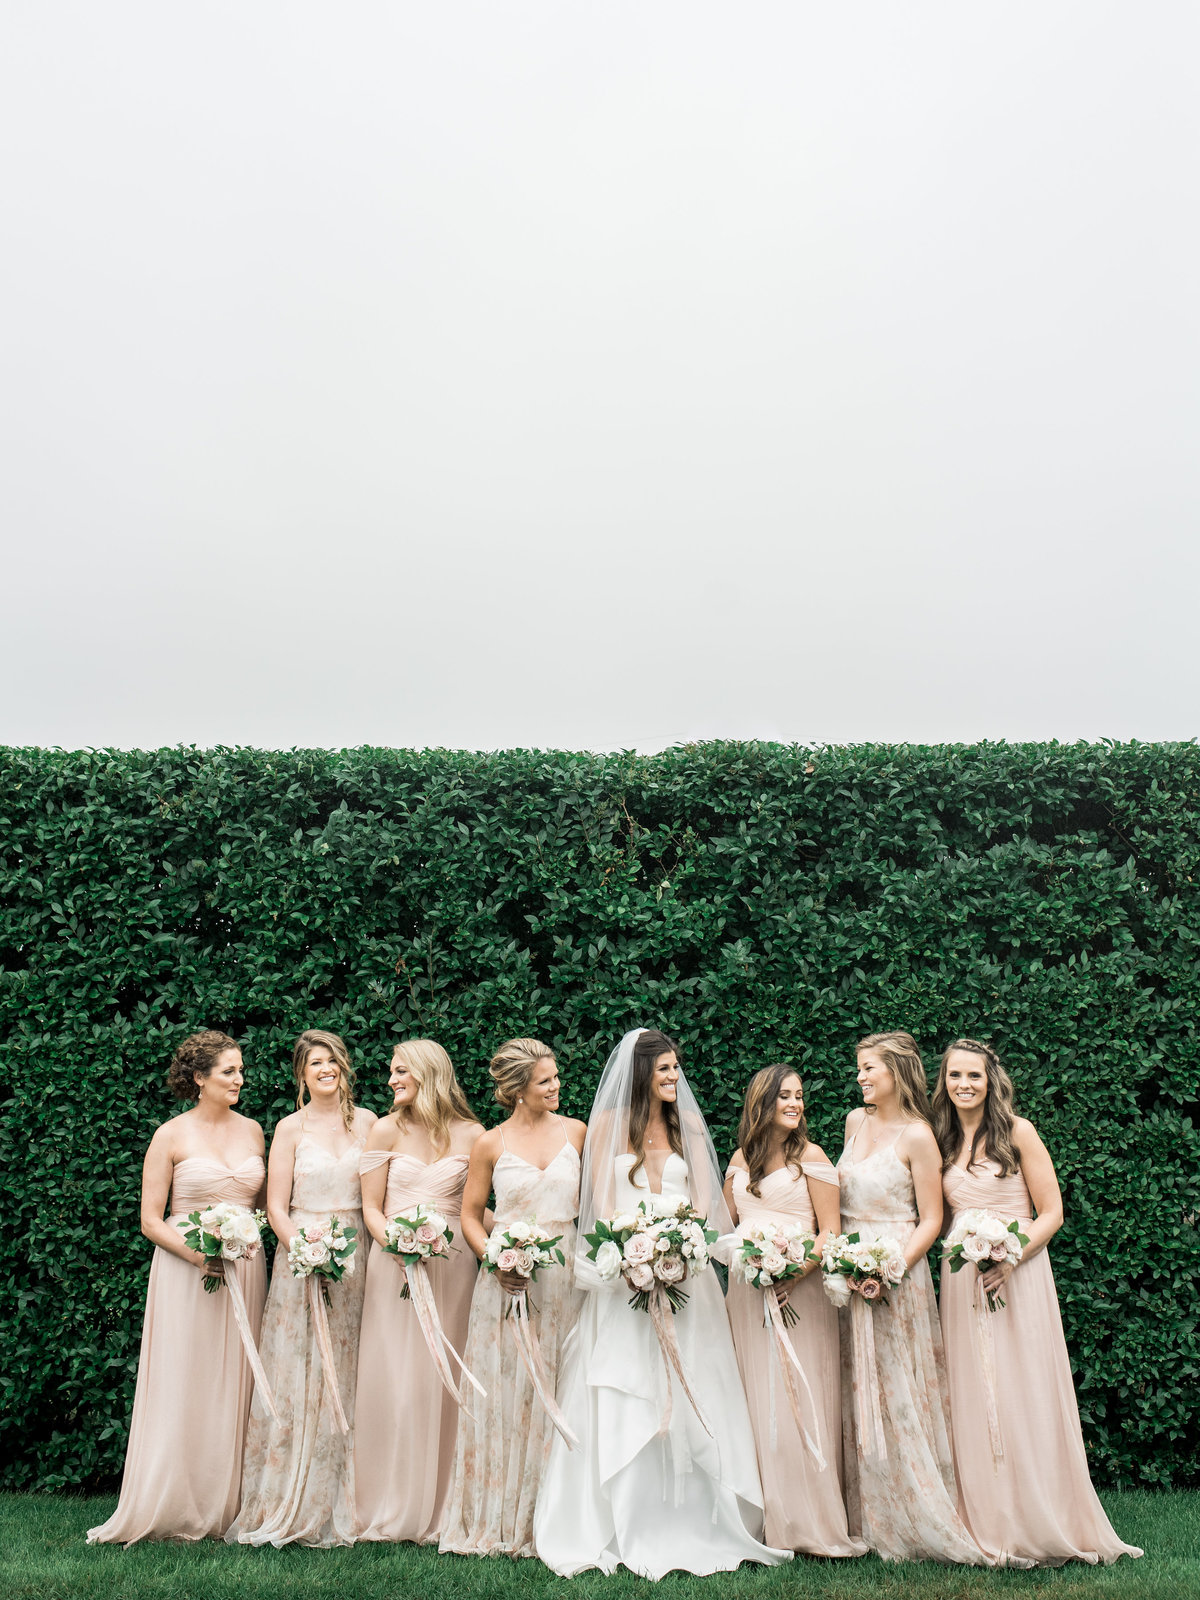 Blush bridesmaids dresses from Amsale for Cape Cod wedding weekend by top destination wedding planner Always Yours Events